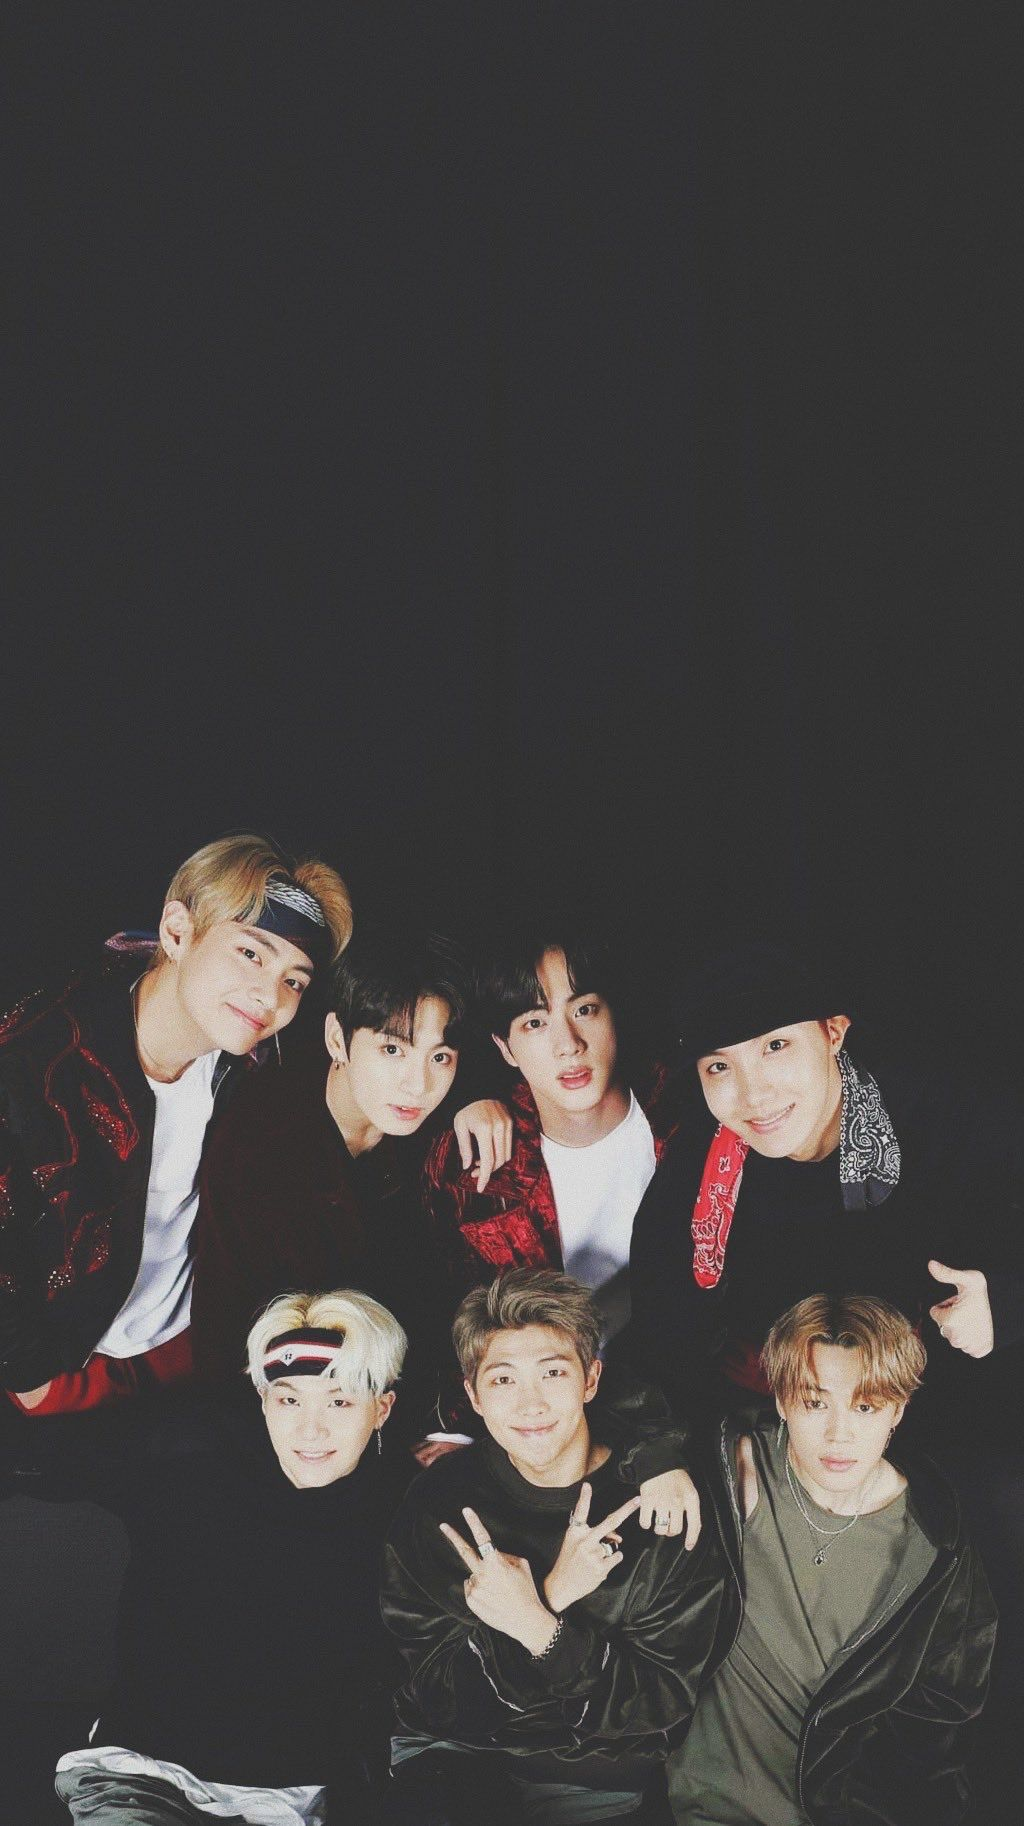 BTS Lockscreen Wallpapers Wallpaper Cave